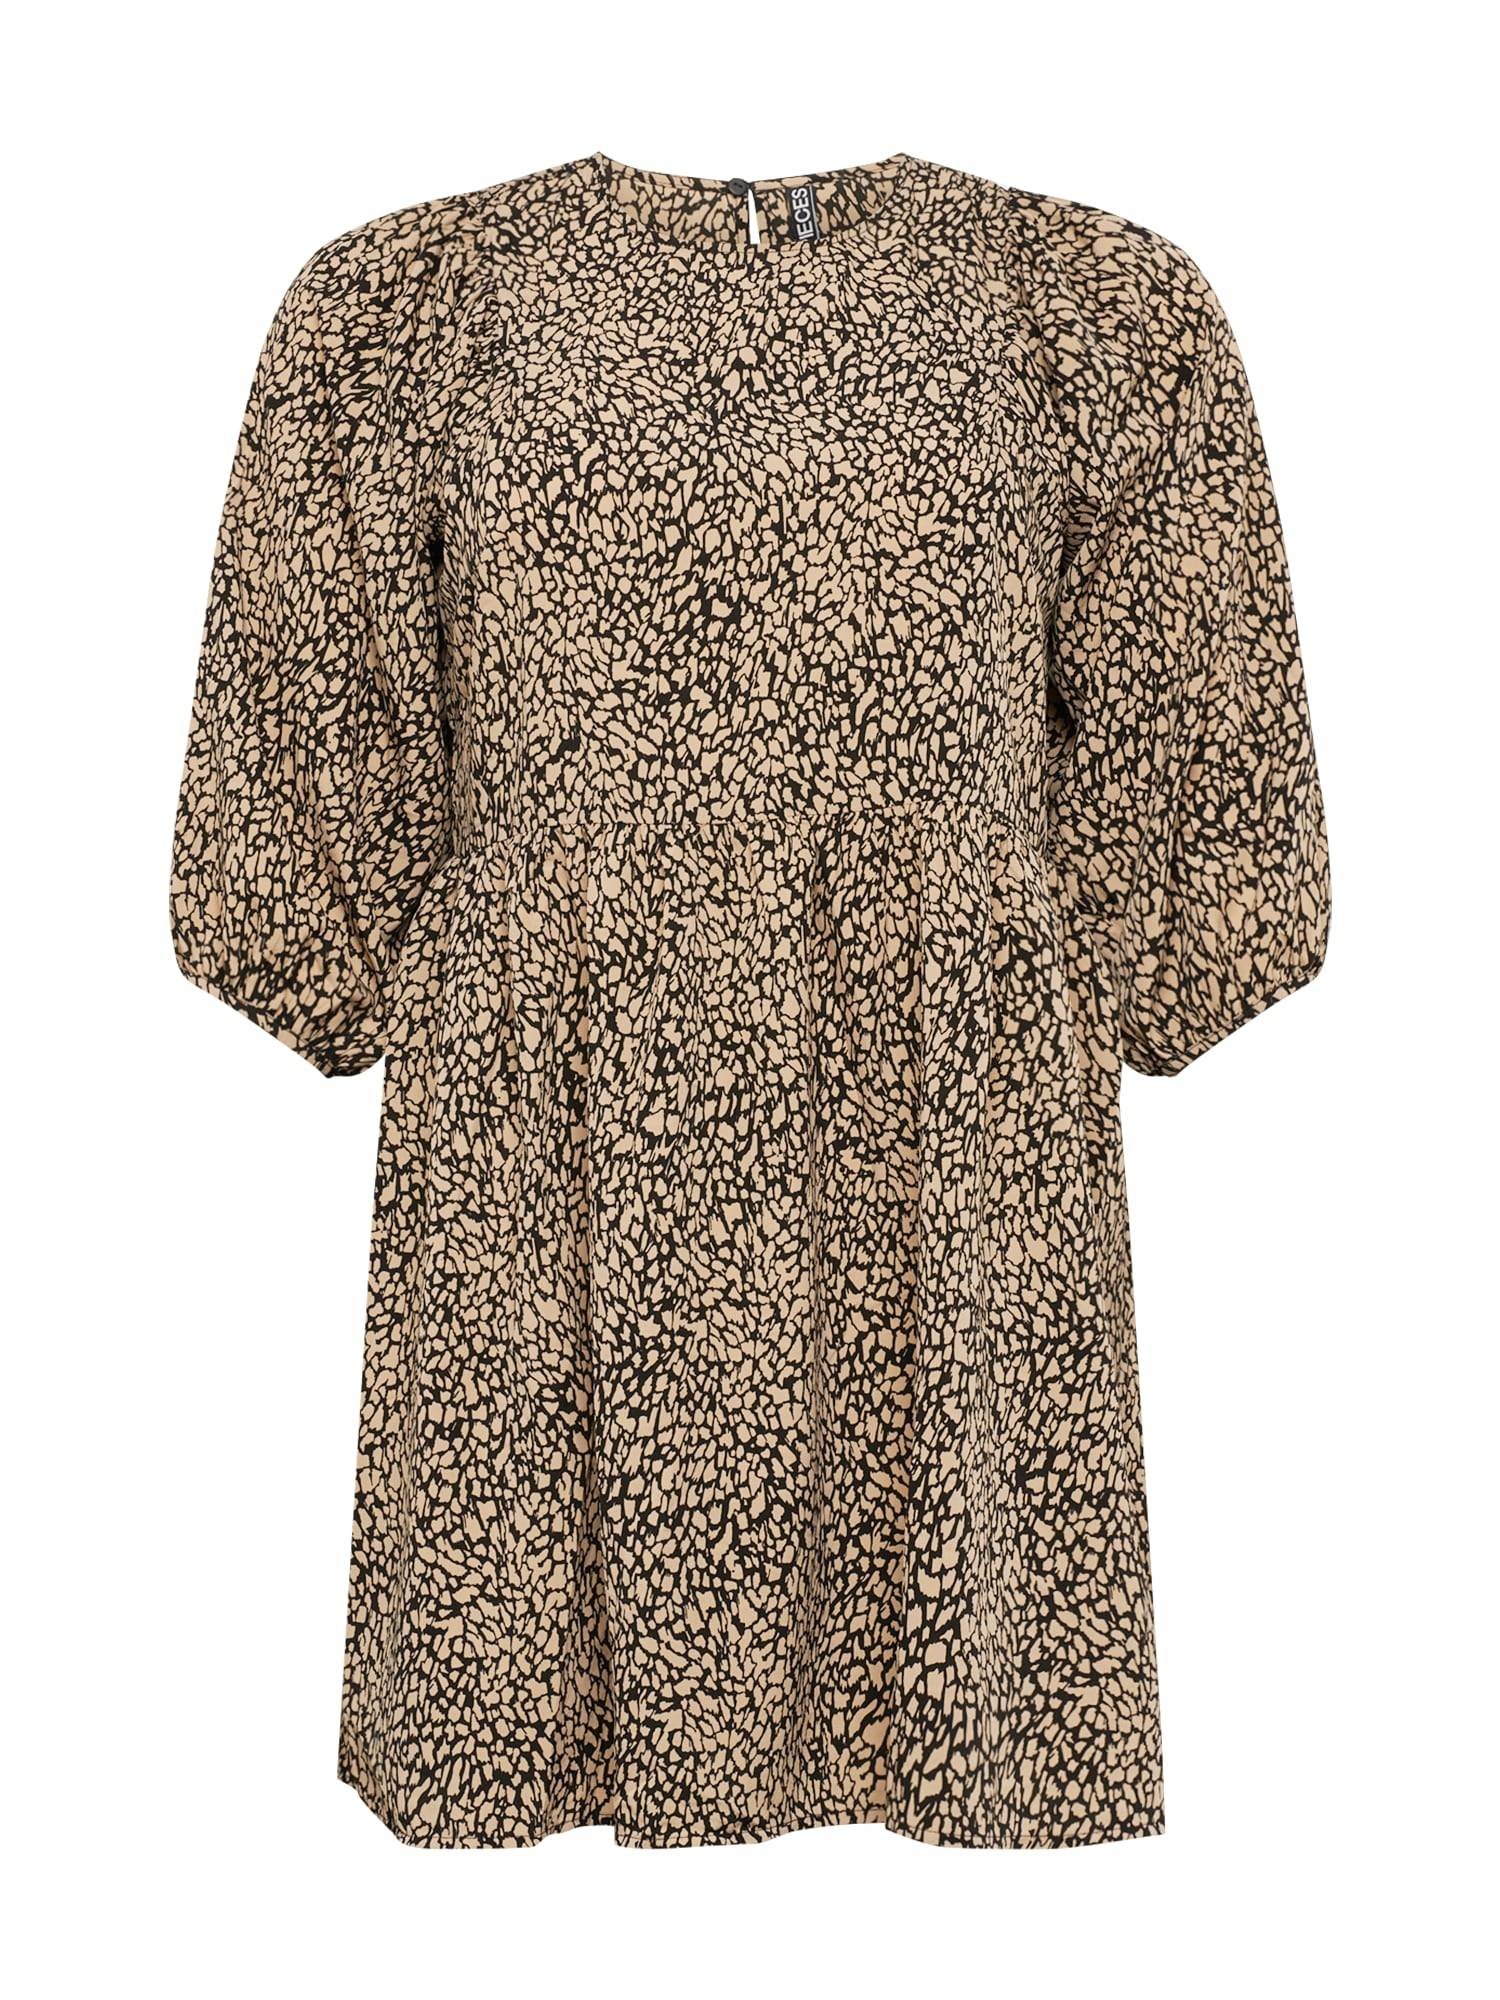 PIECES Curve Robe 'GILBERTA'  - Beige - Taille: 44 - female